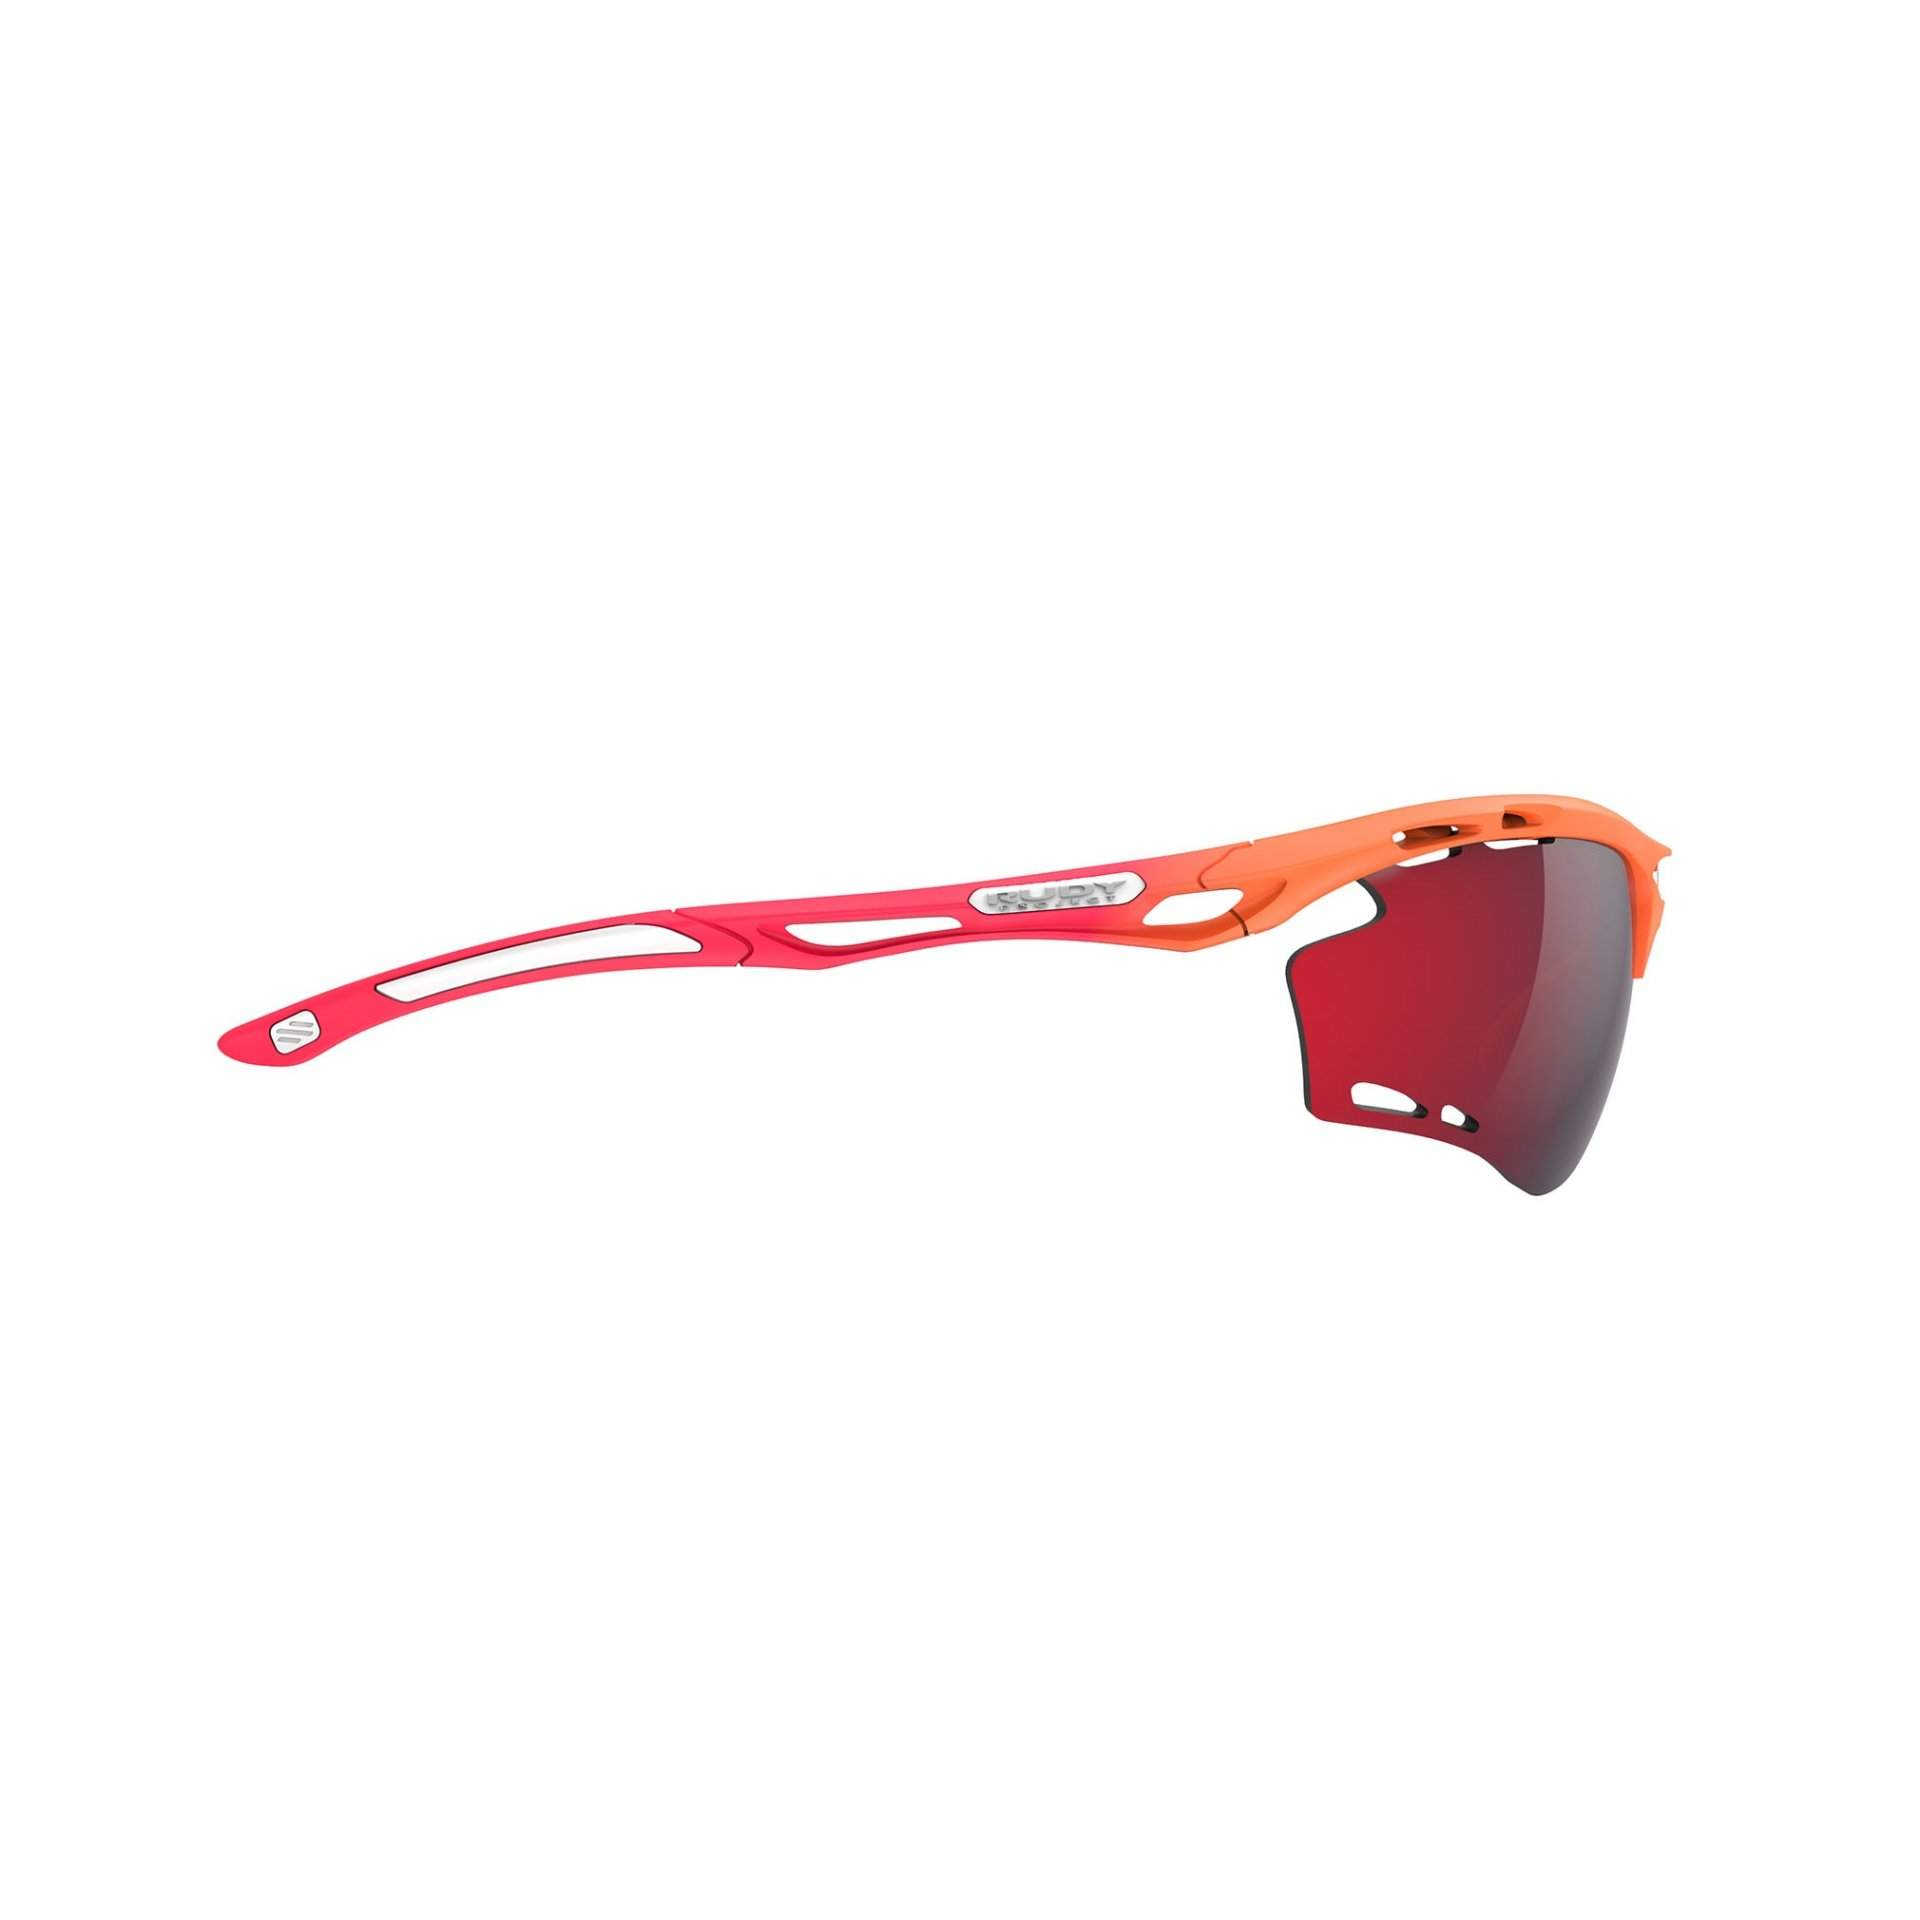 OKULARY RUDY PROJECT PROPULSE MANDARIN FADE CORAL|MULTILASER RED 4